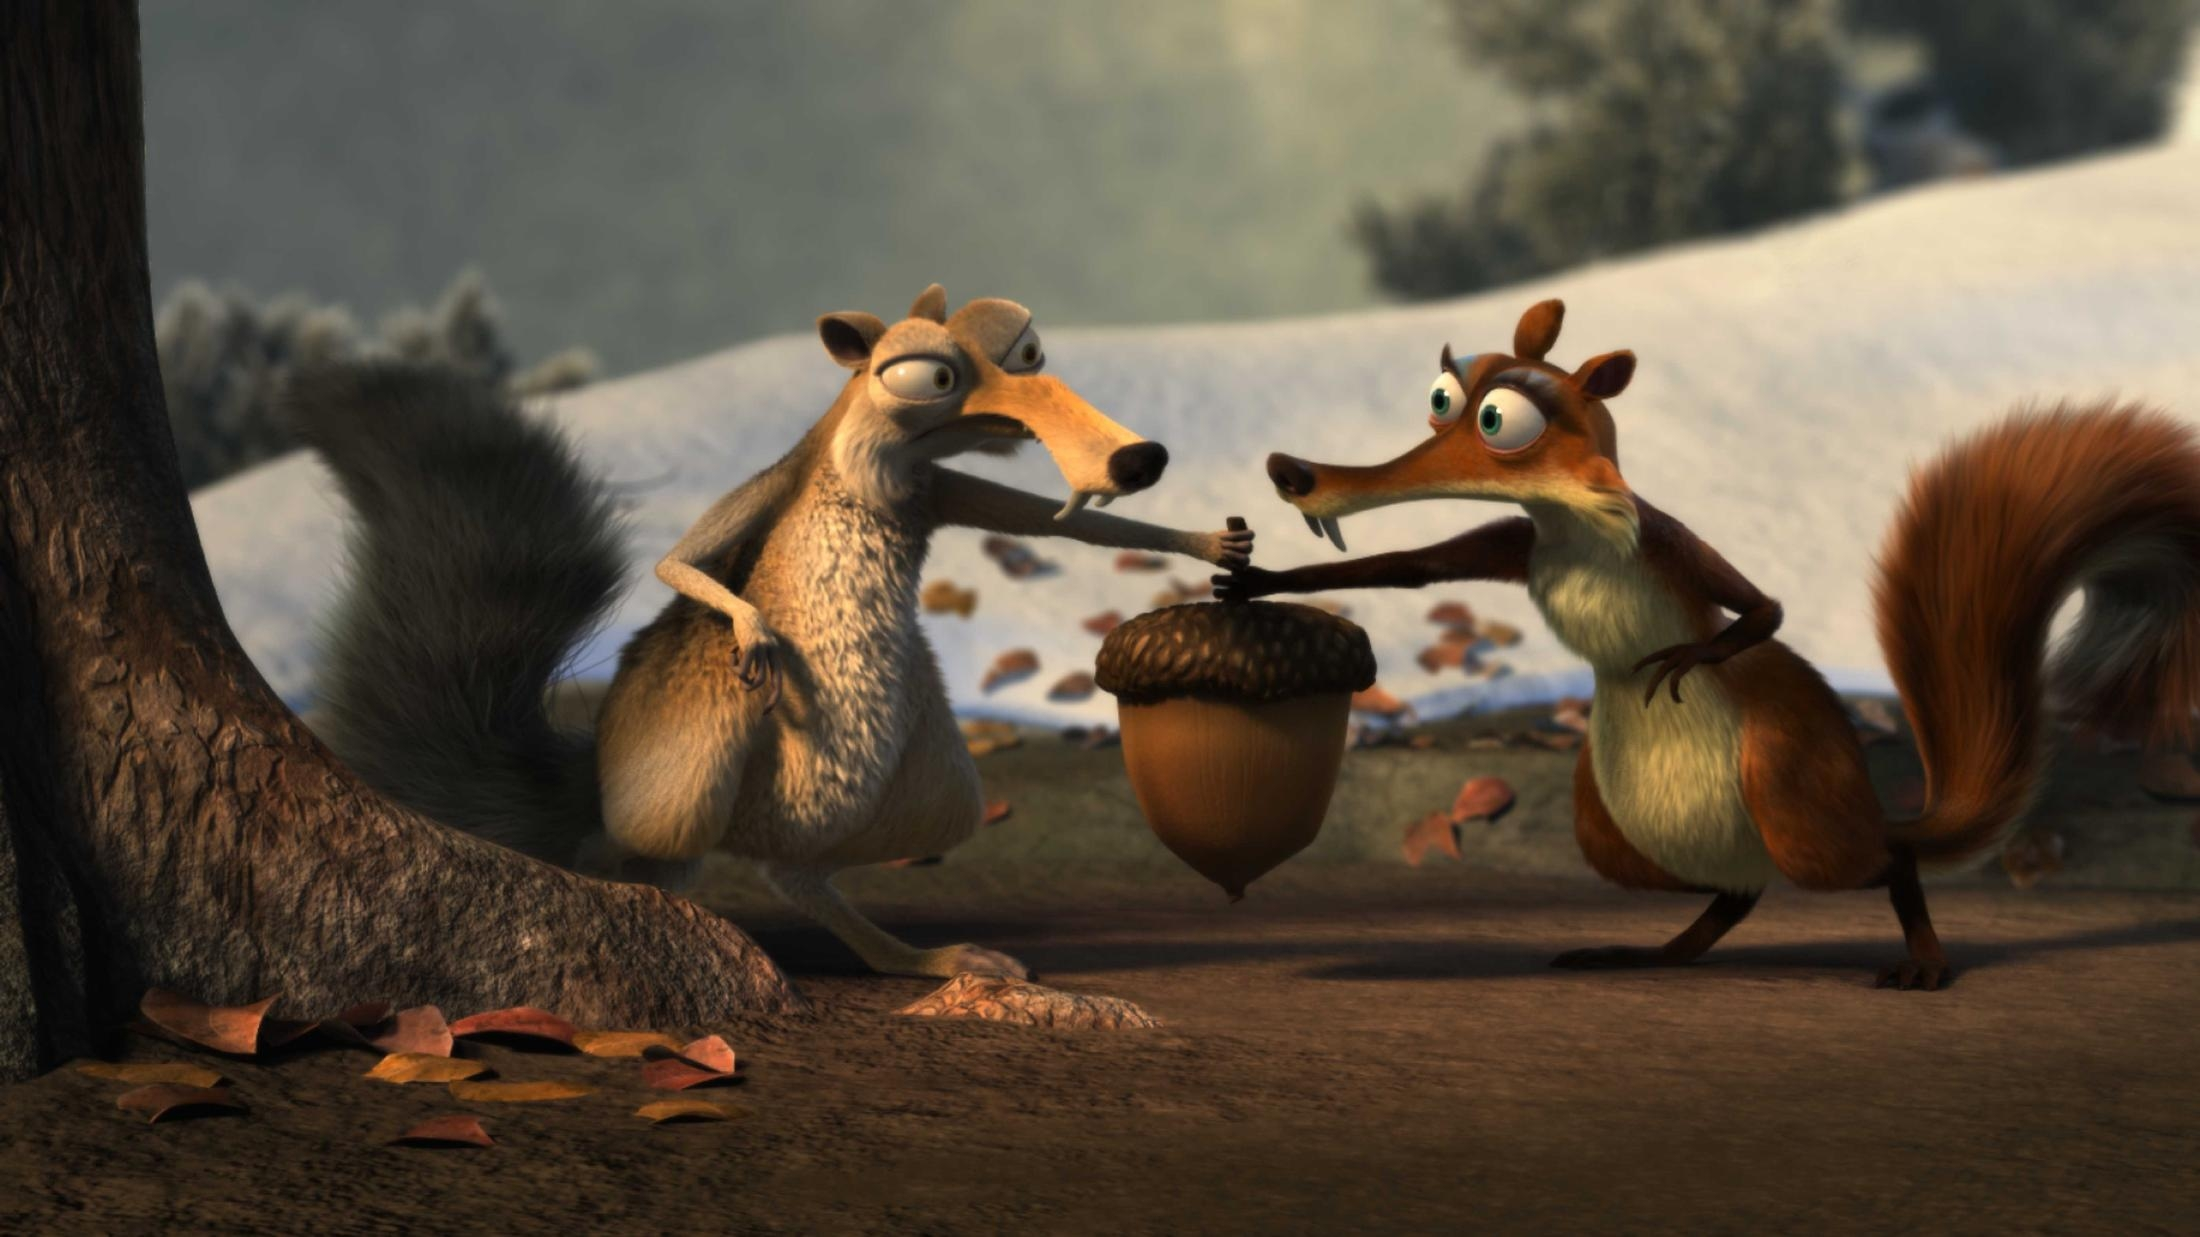 ice age 3 dawn of the dinosaurs wallpaper free